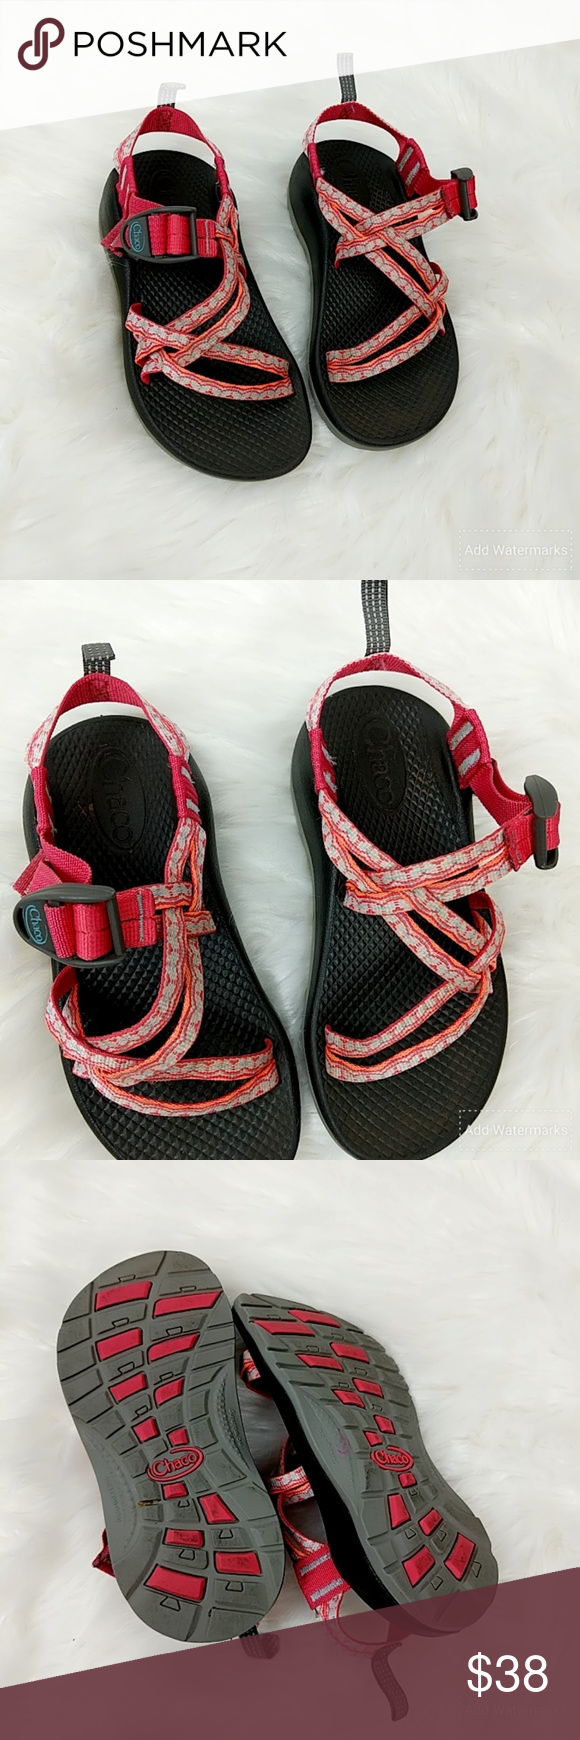 f510568c87f7 Chacos Sandals Waterproof Non Marking Hiking Girls Chacos Sandals  Waterproof Non Marking Hiking Girls Size 1 Youth Pink Chaco Shoes Sandals   Flip  Flops